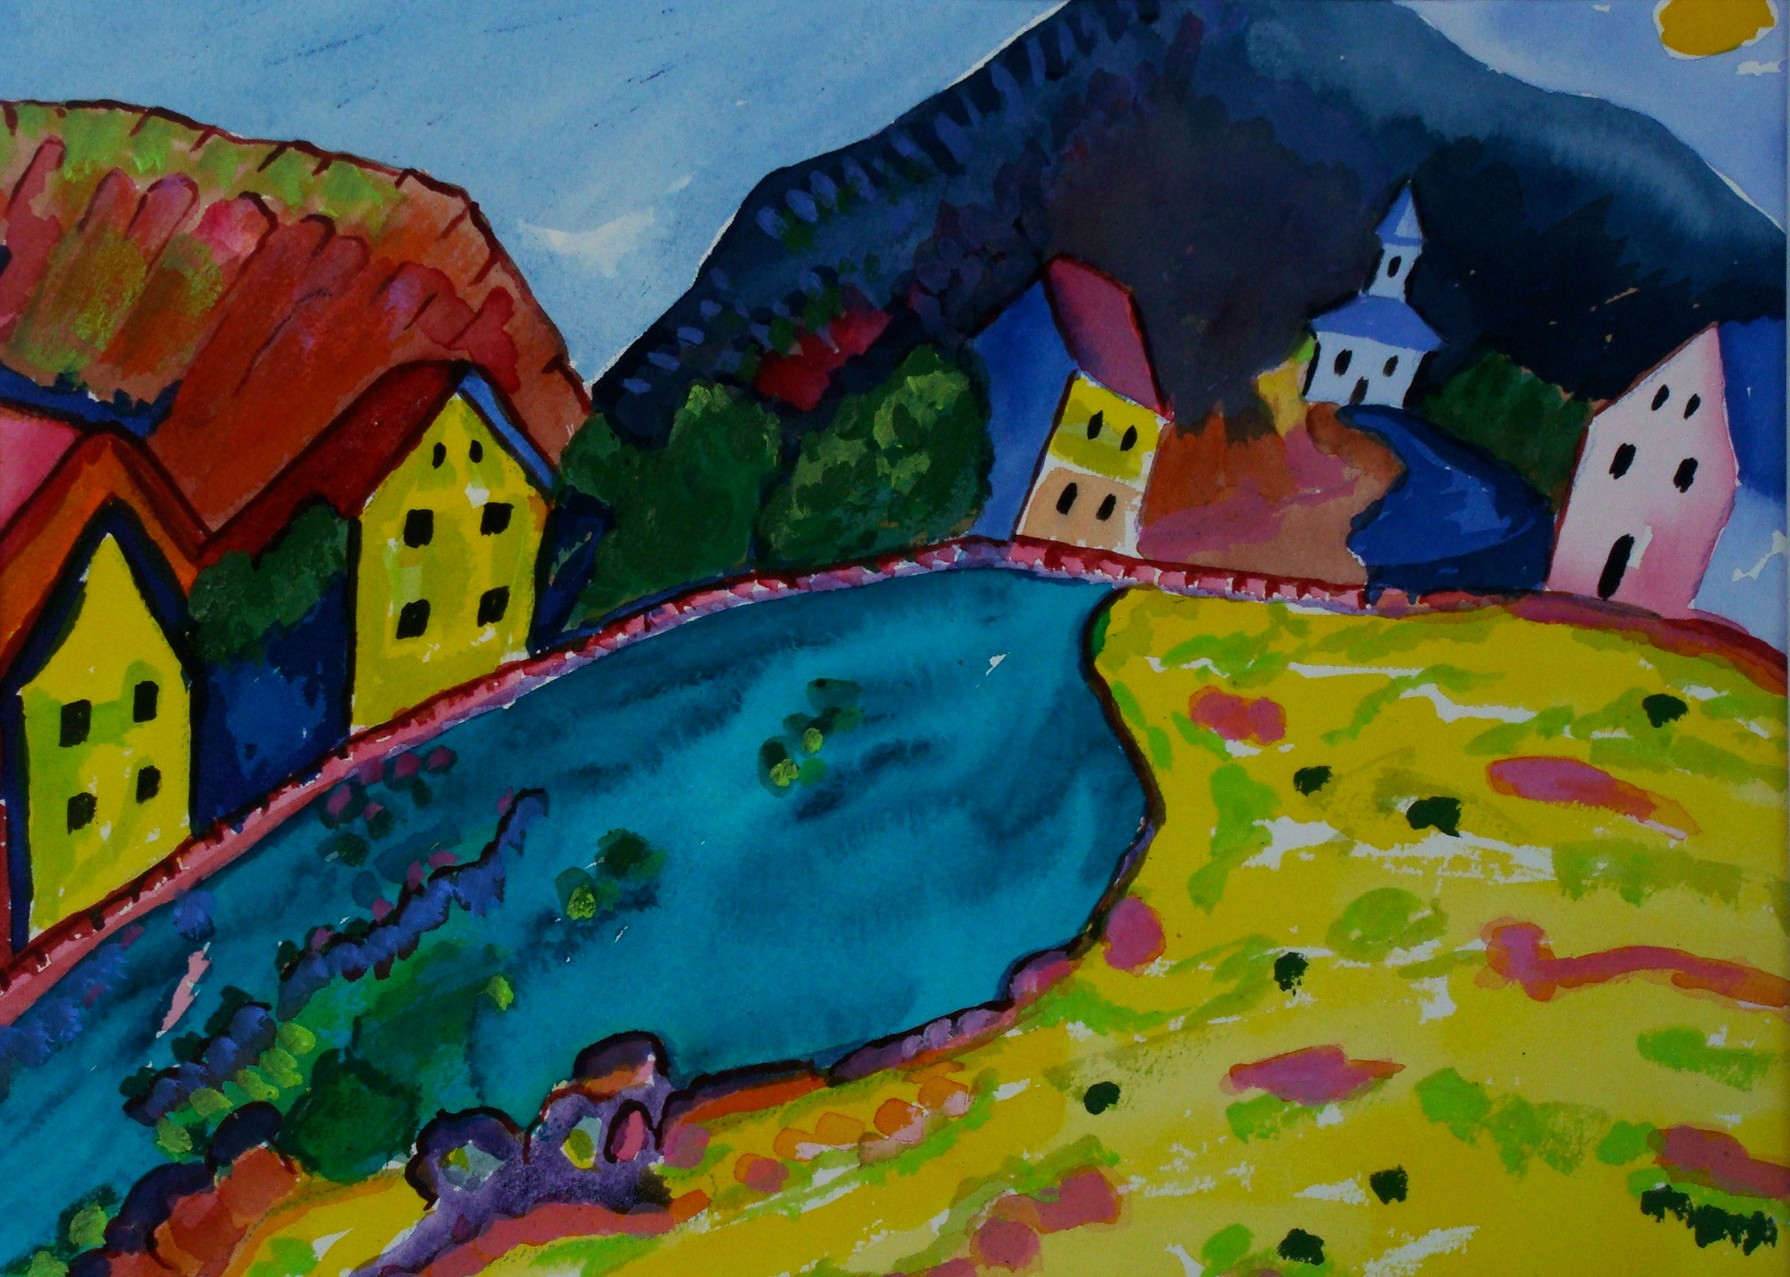 Murnau, watercolor, 13.5 x 10.5, SOLD